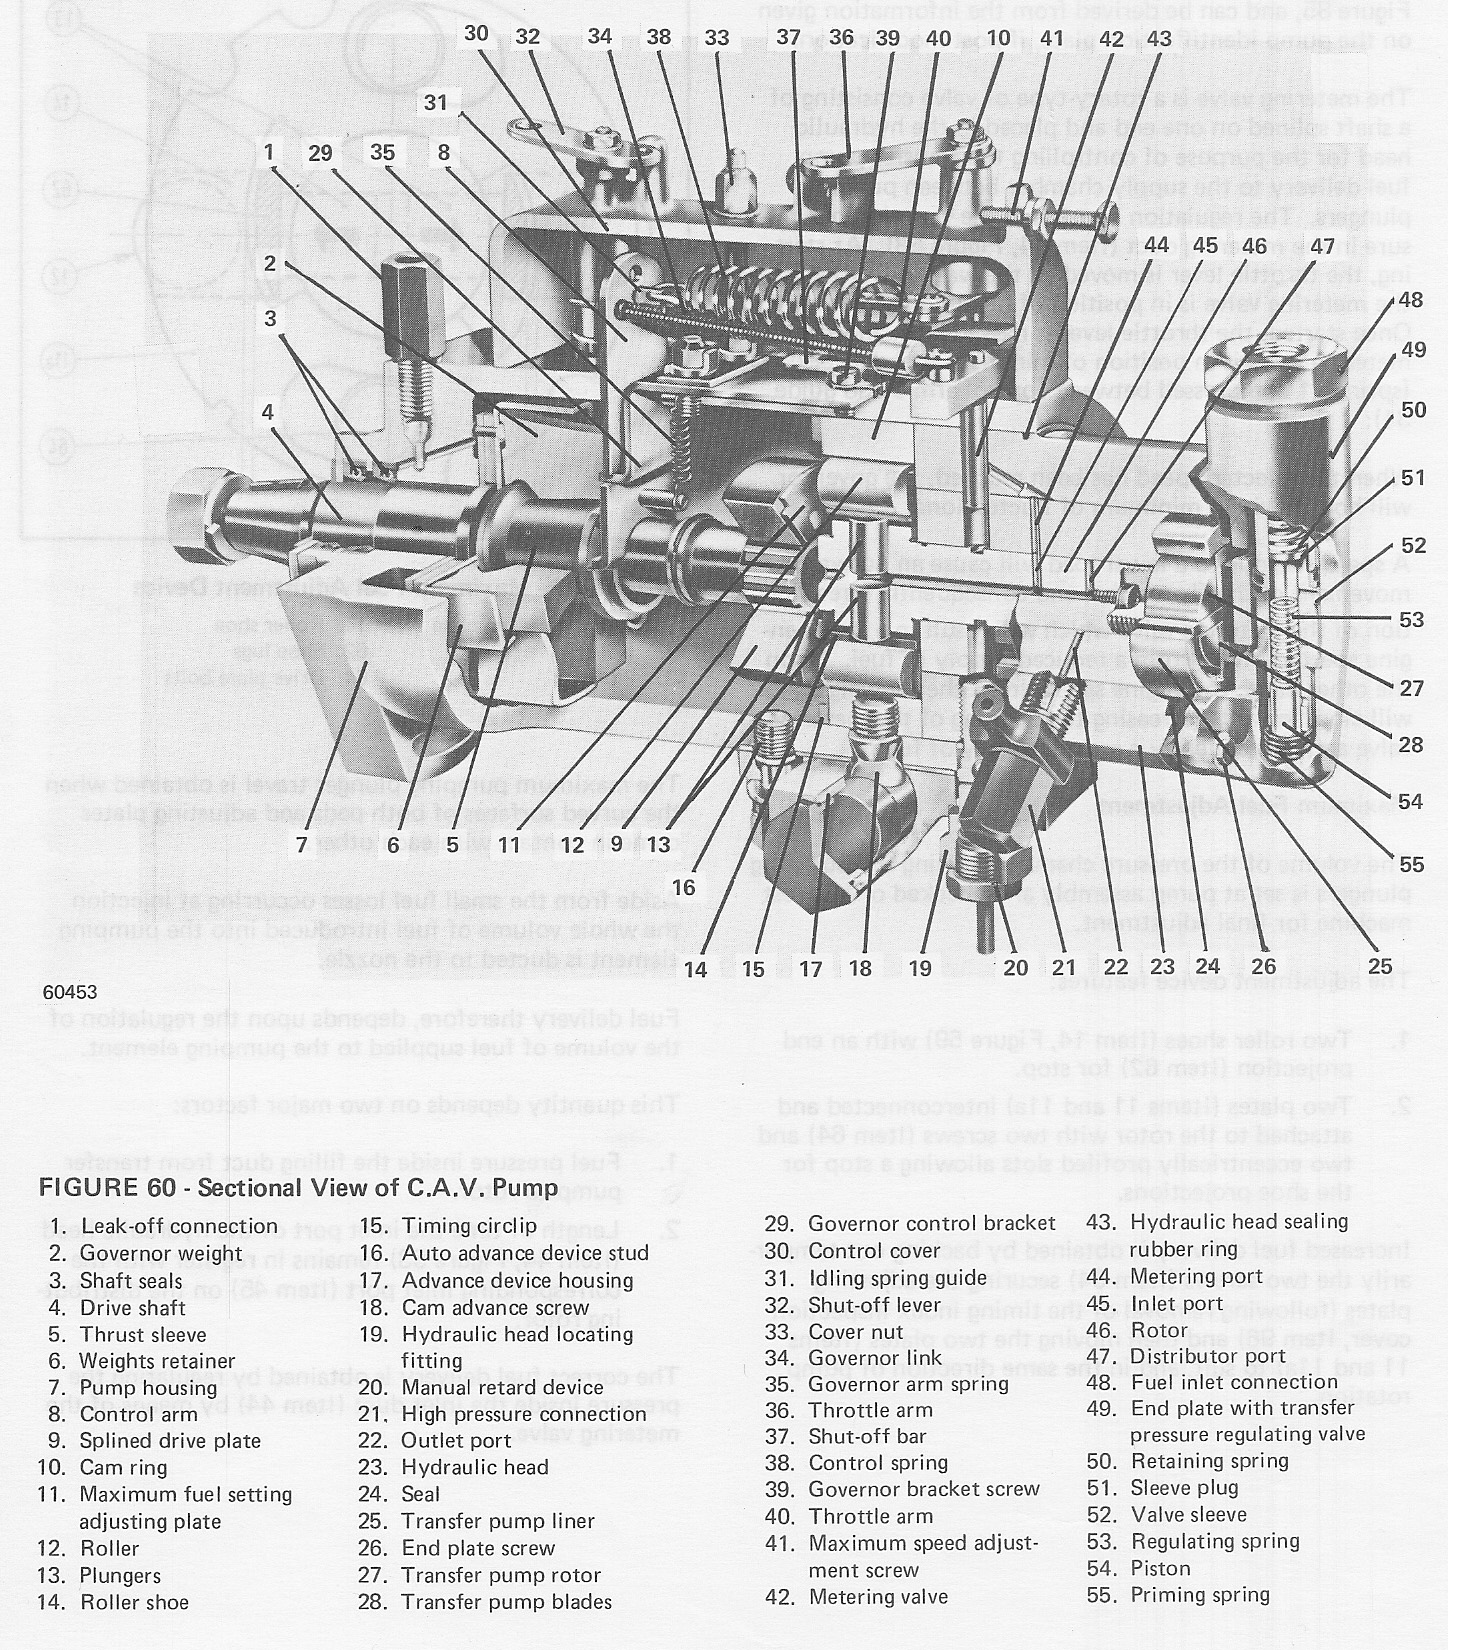 2010 12 02_014229_injection_pump1 i have an older allis chalmers model 5040 diesel tractor that ran allis chalmers 5040 wiring diagram at crackthecode.co